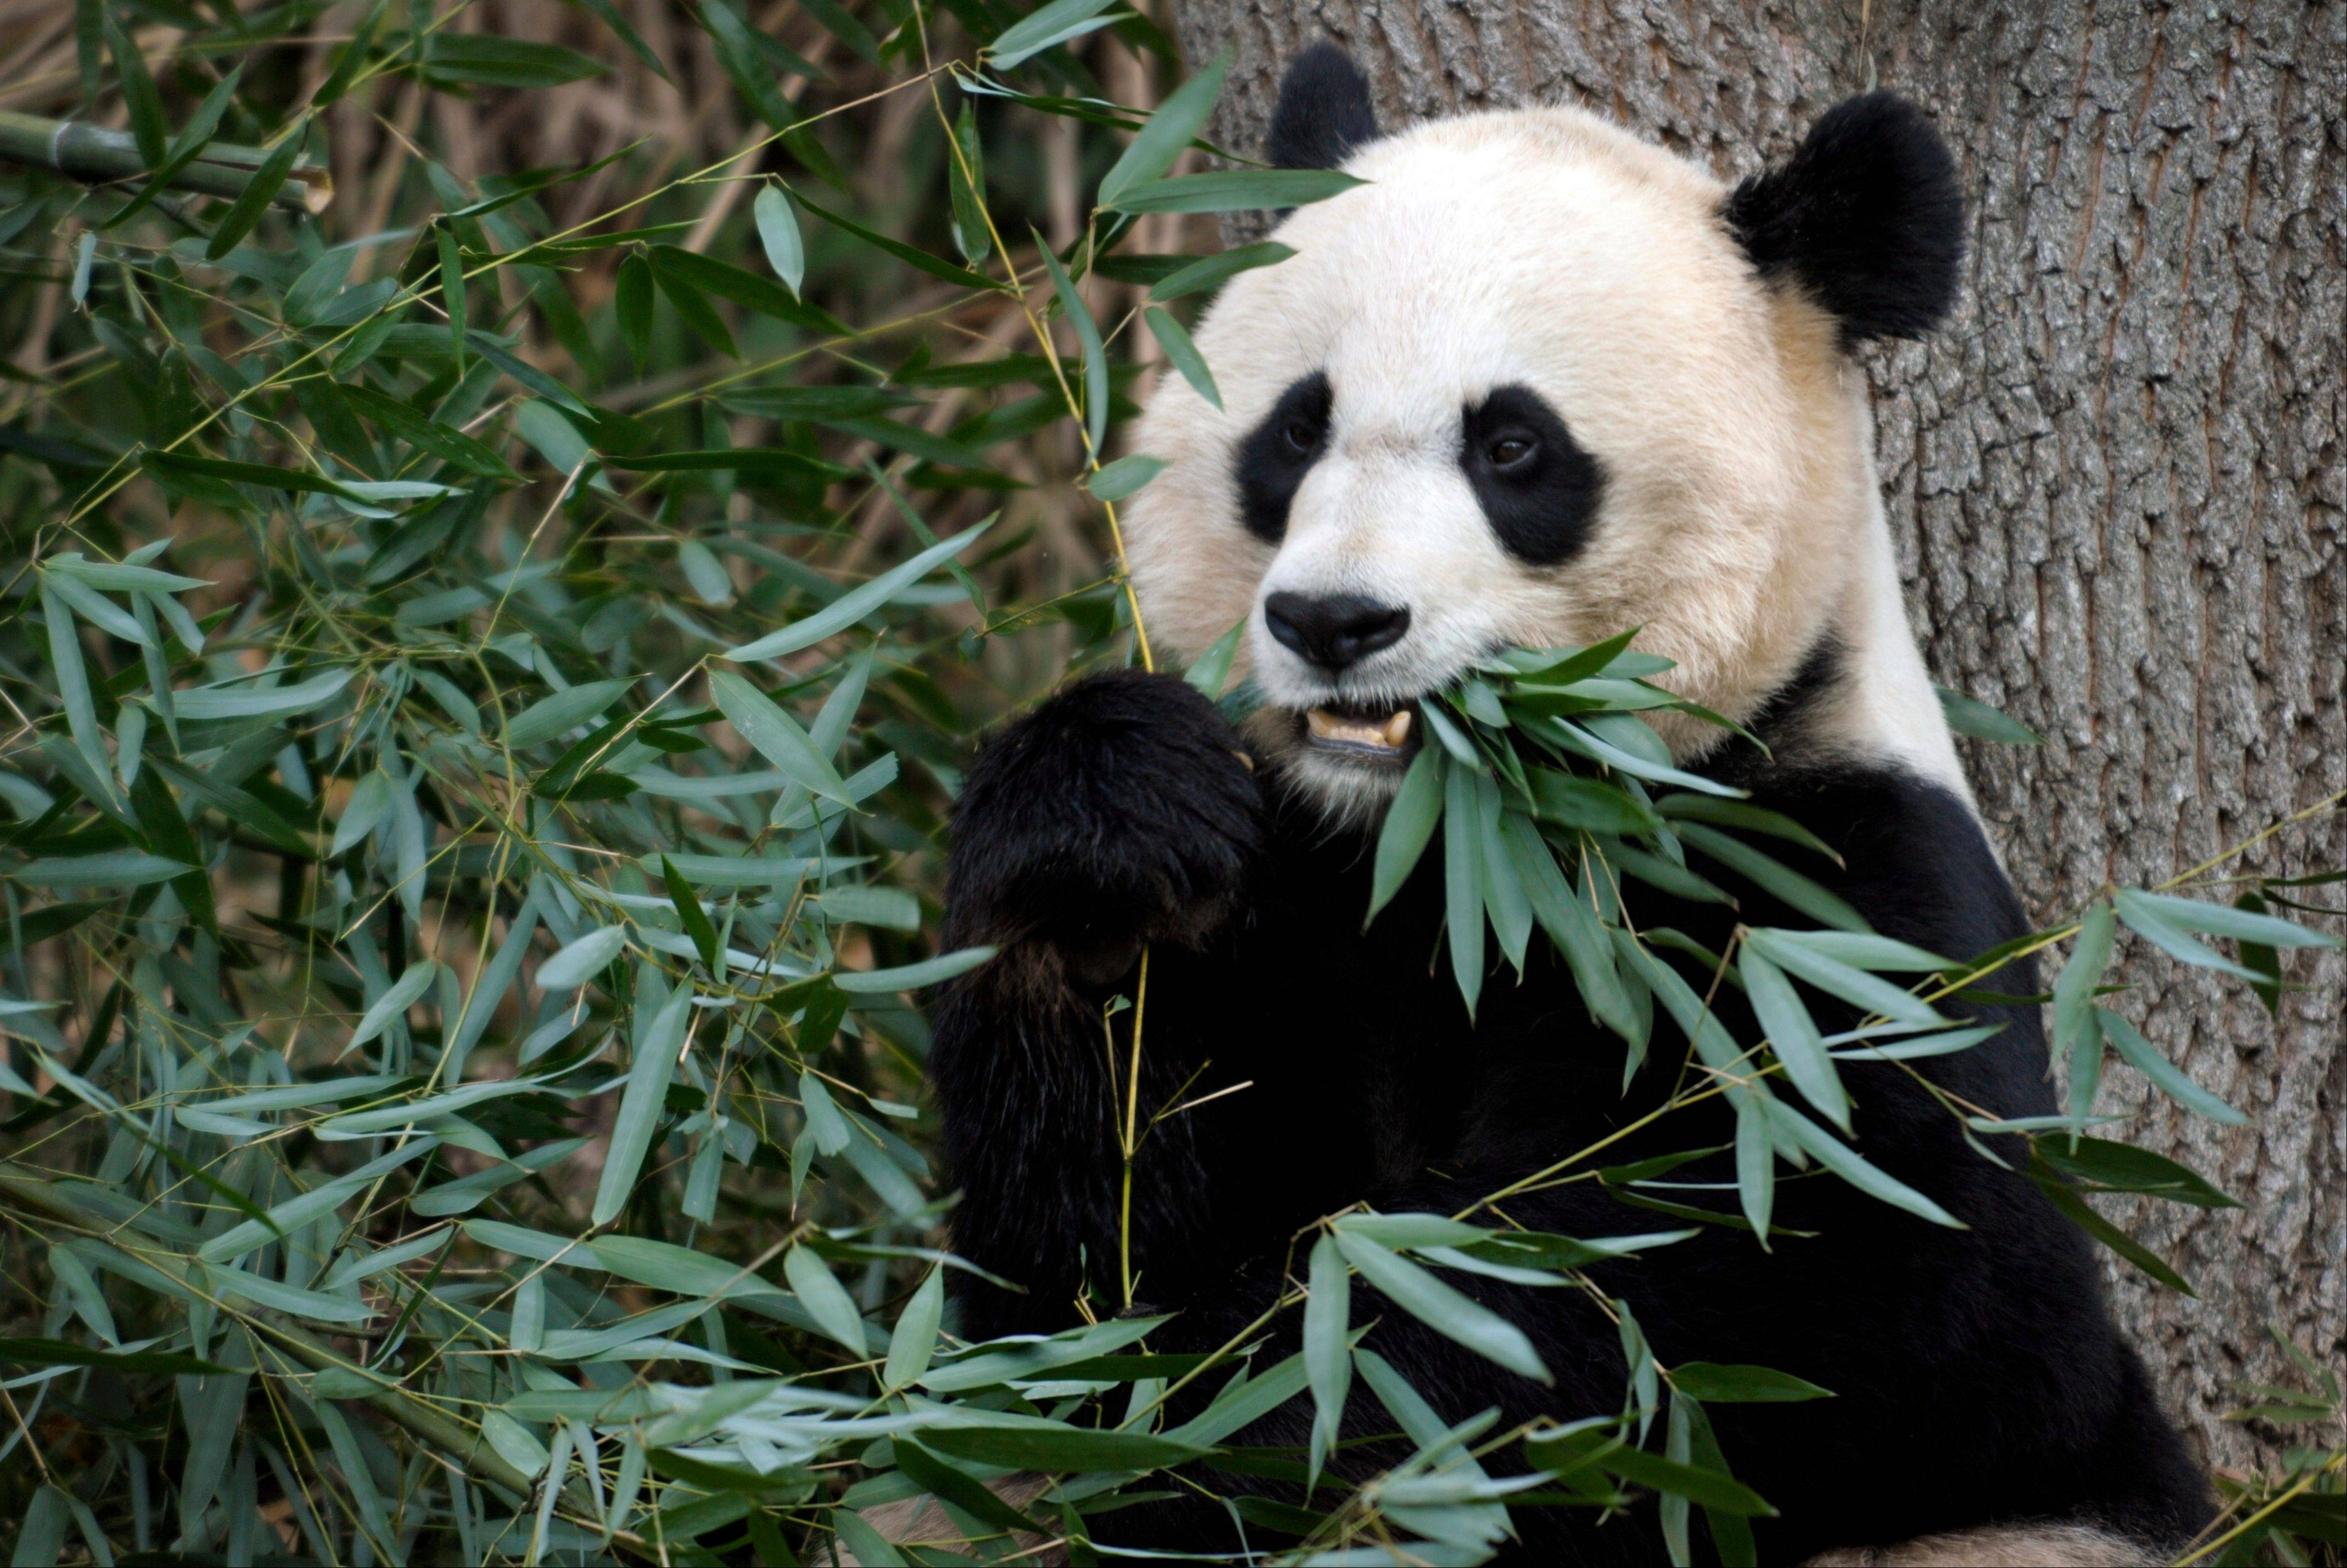 Mei Xiang, the female giant panda at the Smithsonian's National Zoo in Washington, gave birth to a cub Sept. 16, but the cub died Sunday.